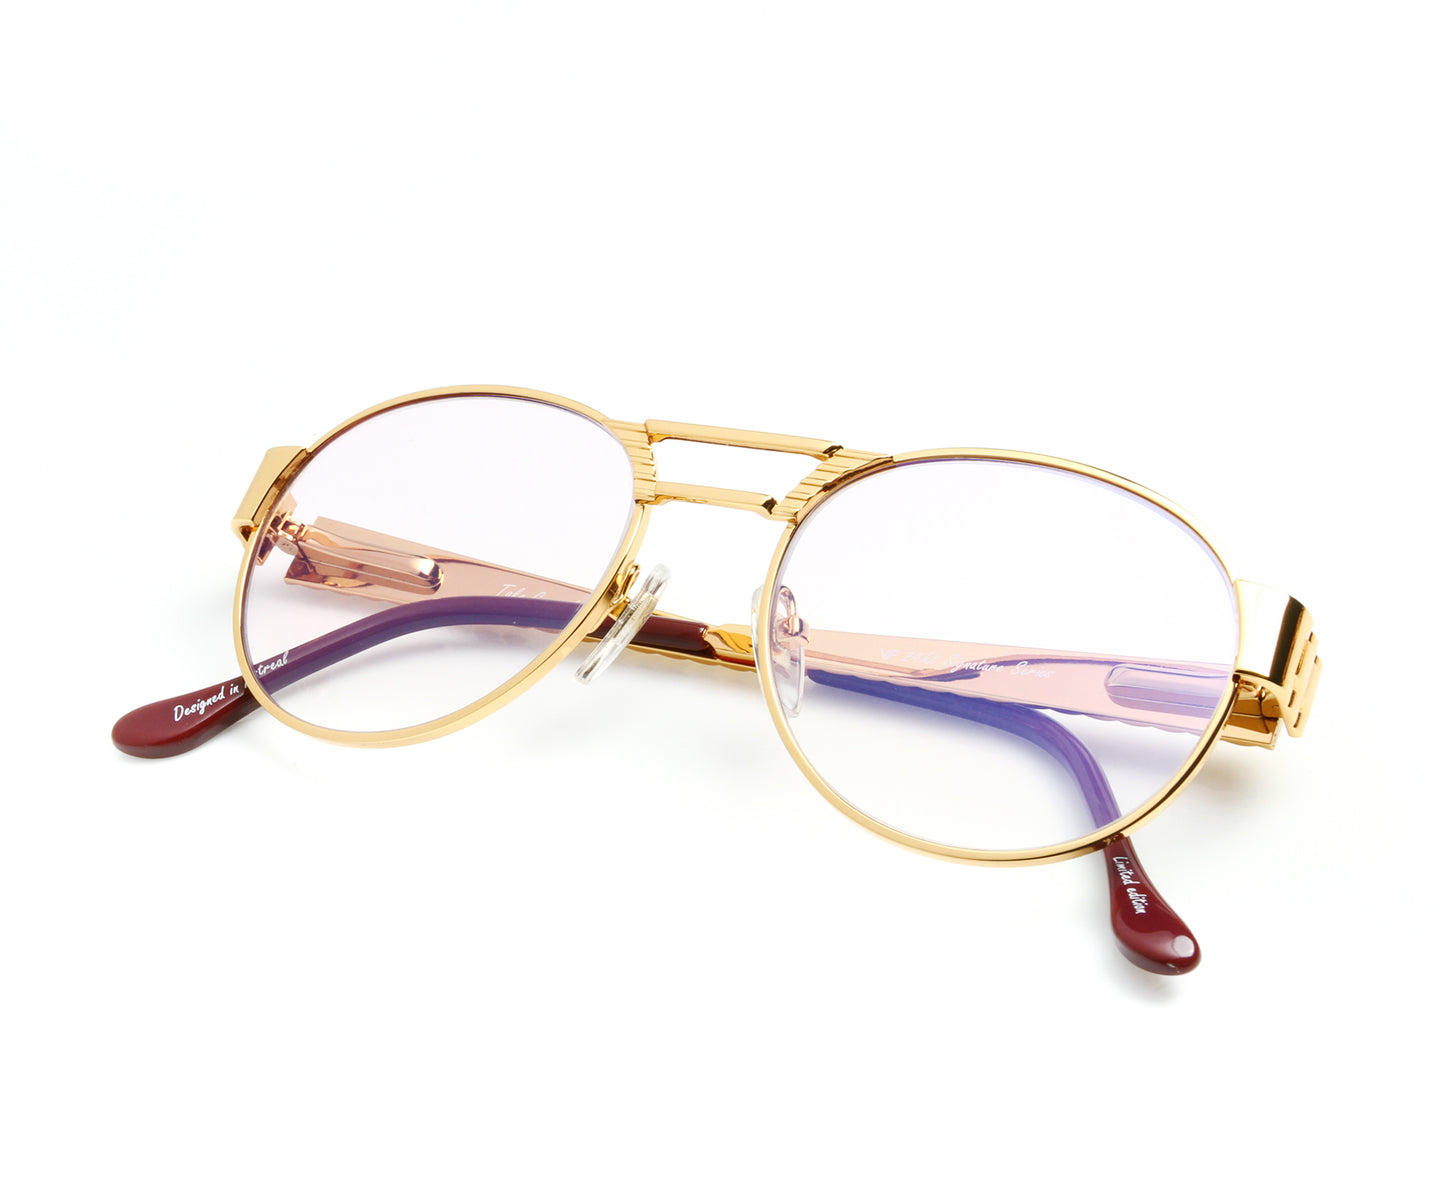 VF Jubilee 24KT Gold (Powder Lilac) Thumb, VF Masterpiece , glasses frames, eyeglasses online, eyeglass frames, mens glasses, womens glasses, buy glasses online, designer eyeglasses, vintage sunglasses, retro sunglasses, vintage glasses, sunglass, eyeglass, glasses, lens, vintage frames company, vf